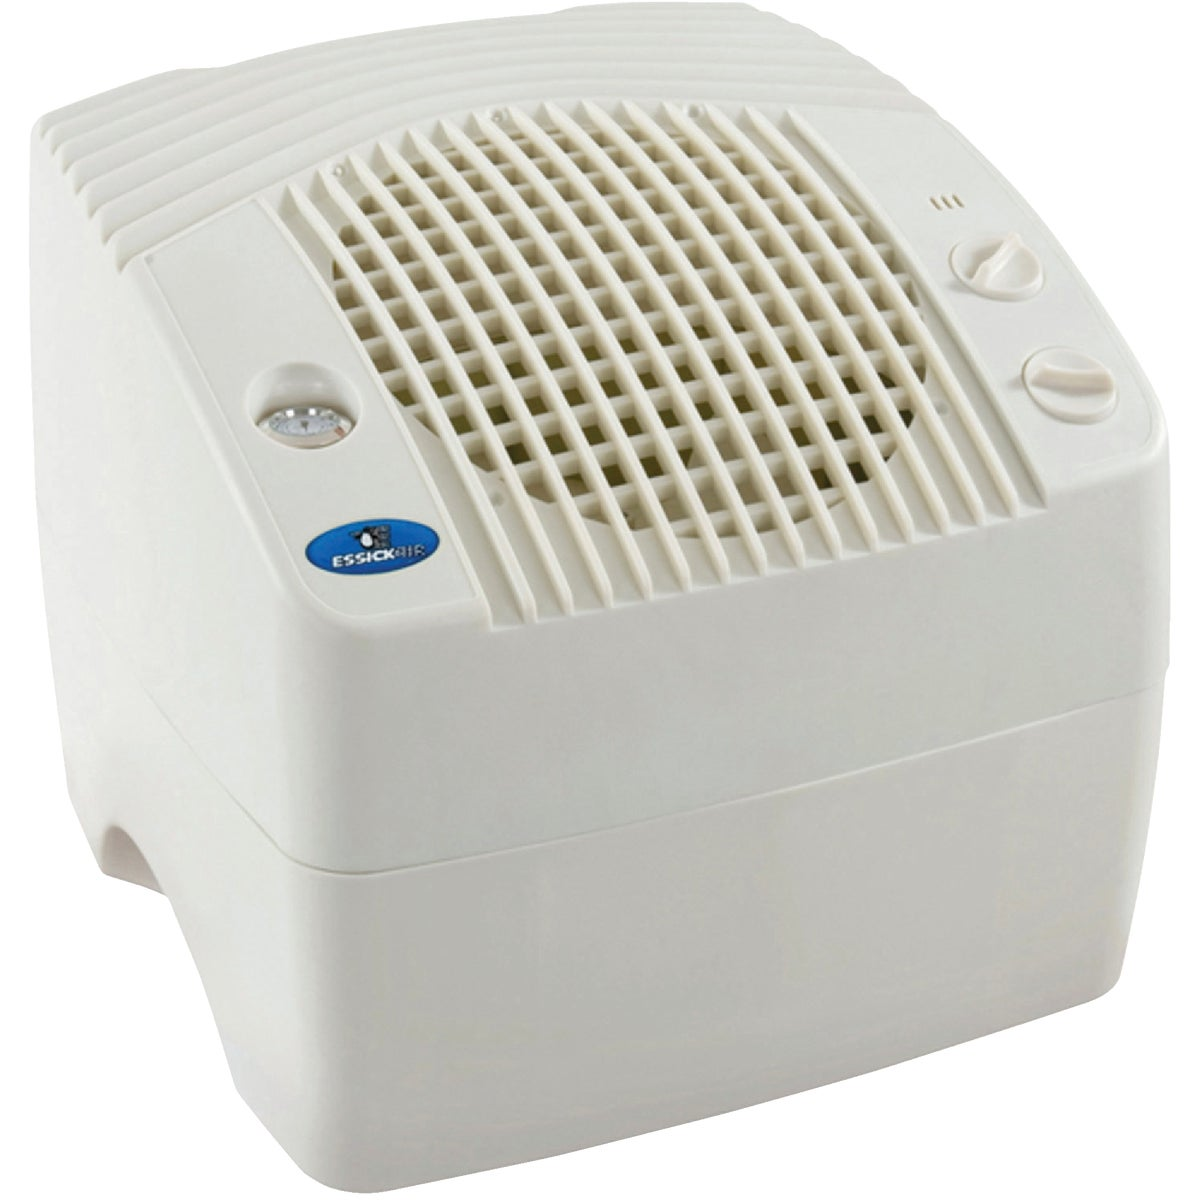 TABLETOP WHT HUMIDIFIER